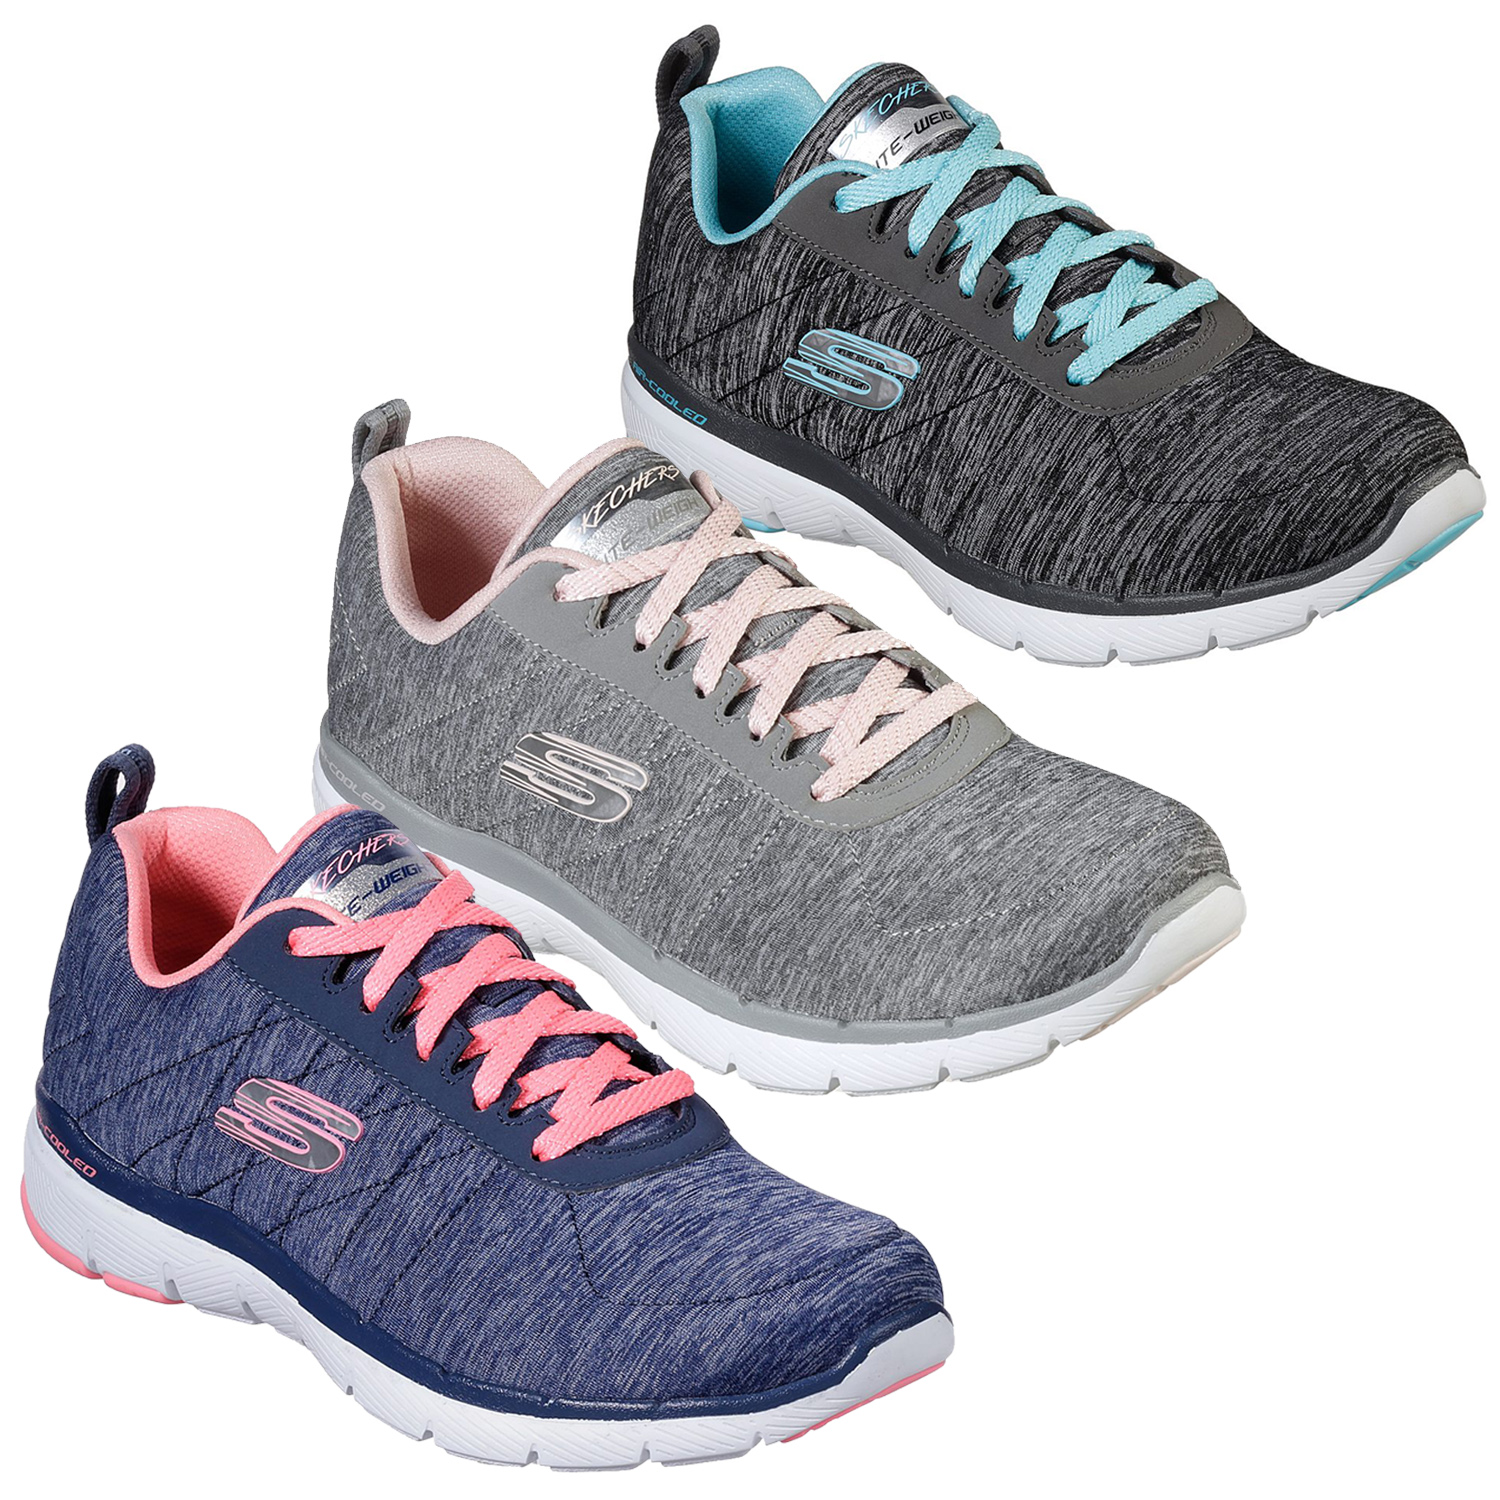 skechers lightweight memory foam womens